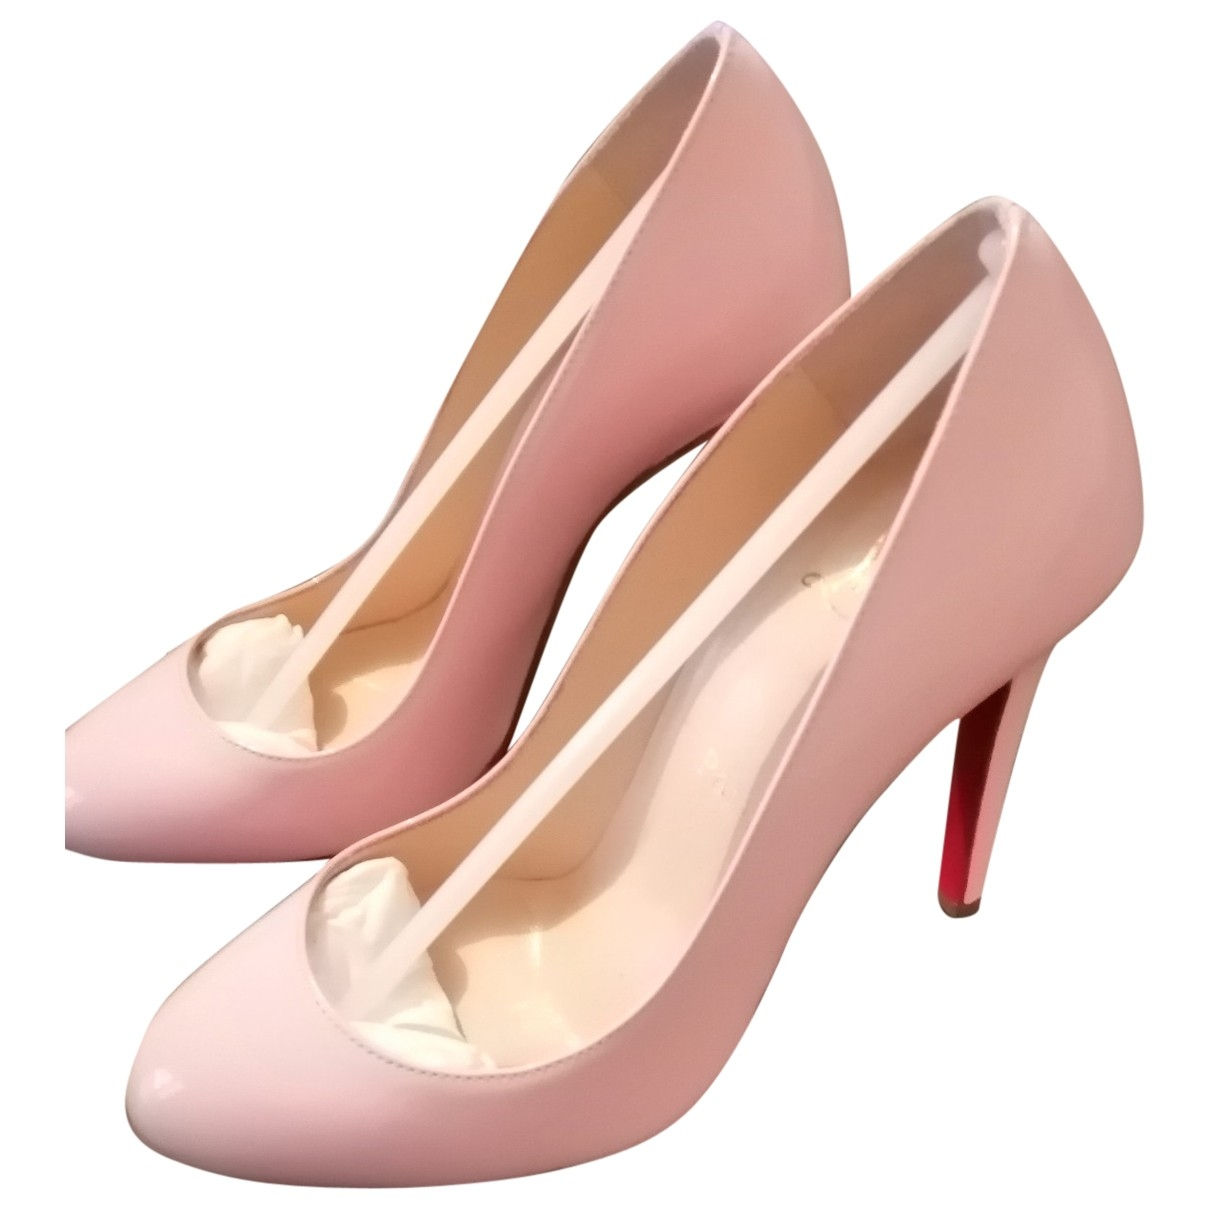 Christian Louboutin Simple pump Pink Patent leather Heels for Women 35 EU